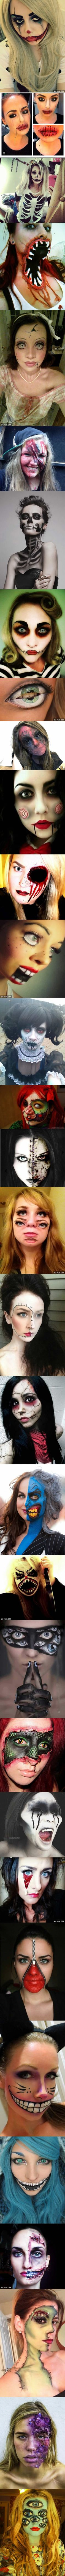 32 Totally Creepy Makeup Looks To Try This Halloween